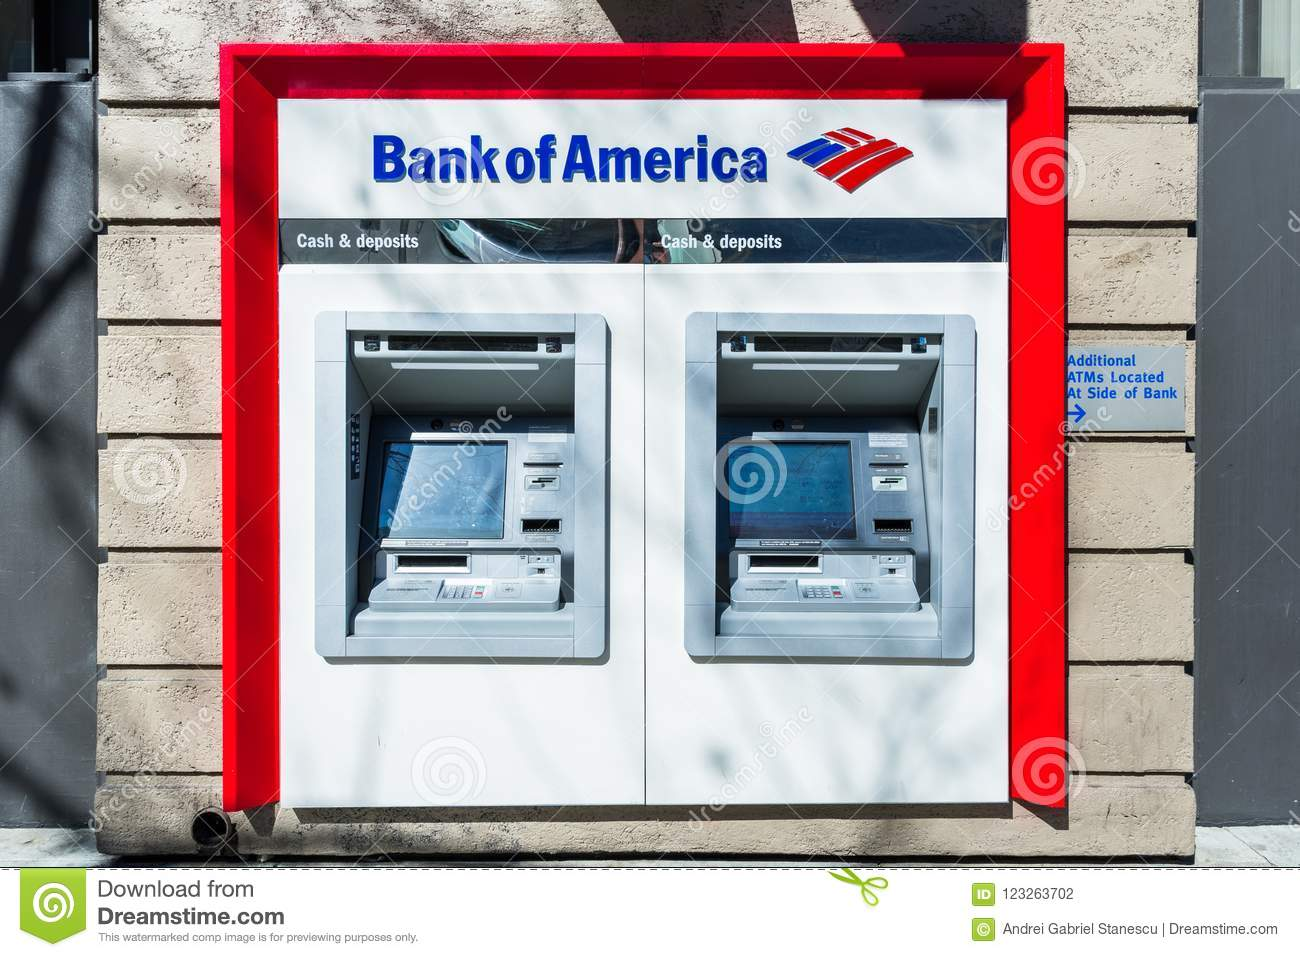 367 Bank America Atm Photos Free Royalty Free Stock Photos From Dreamstime